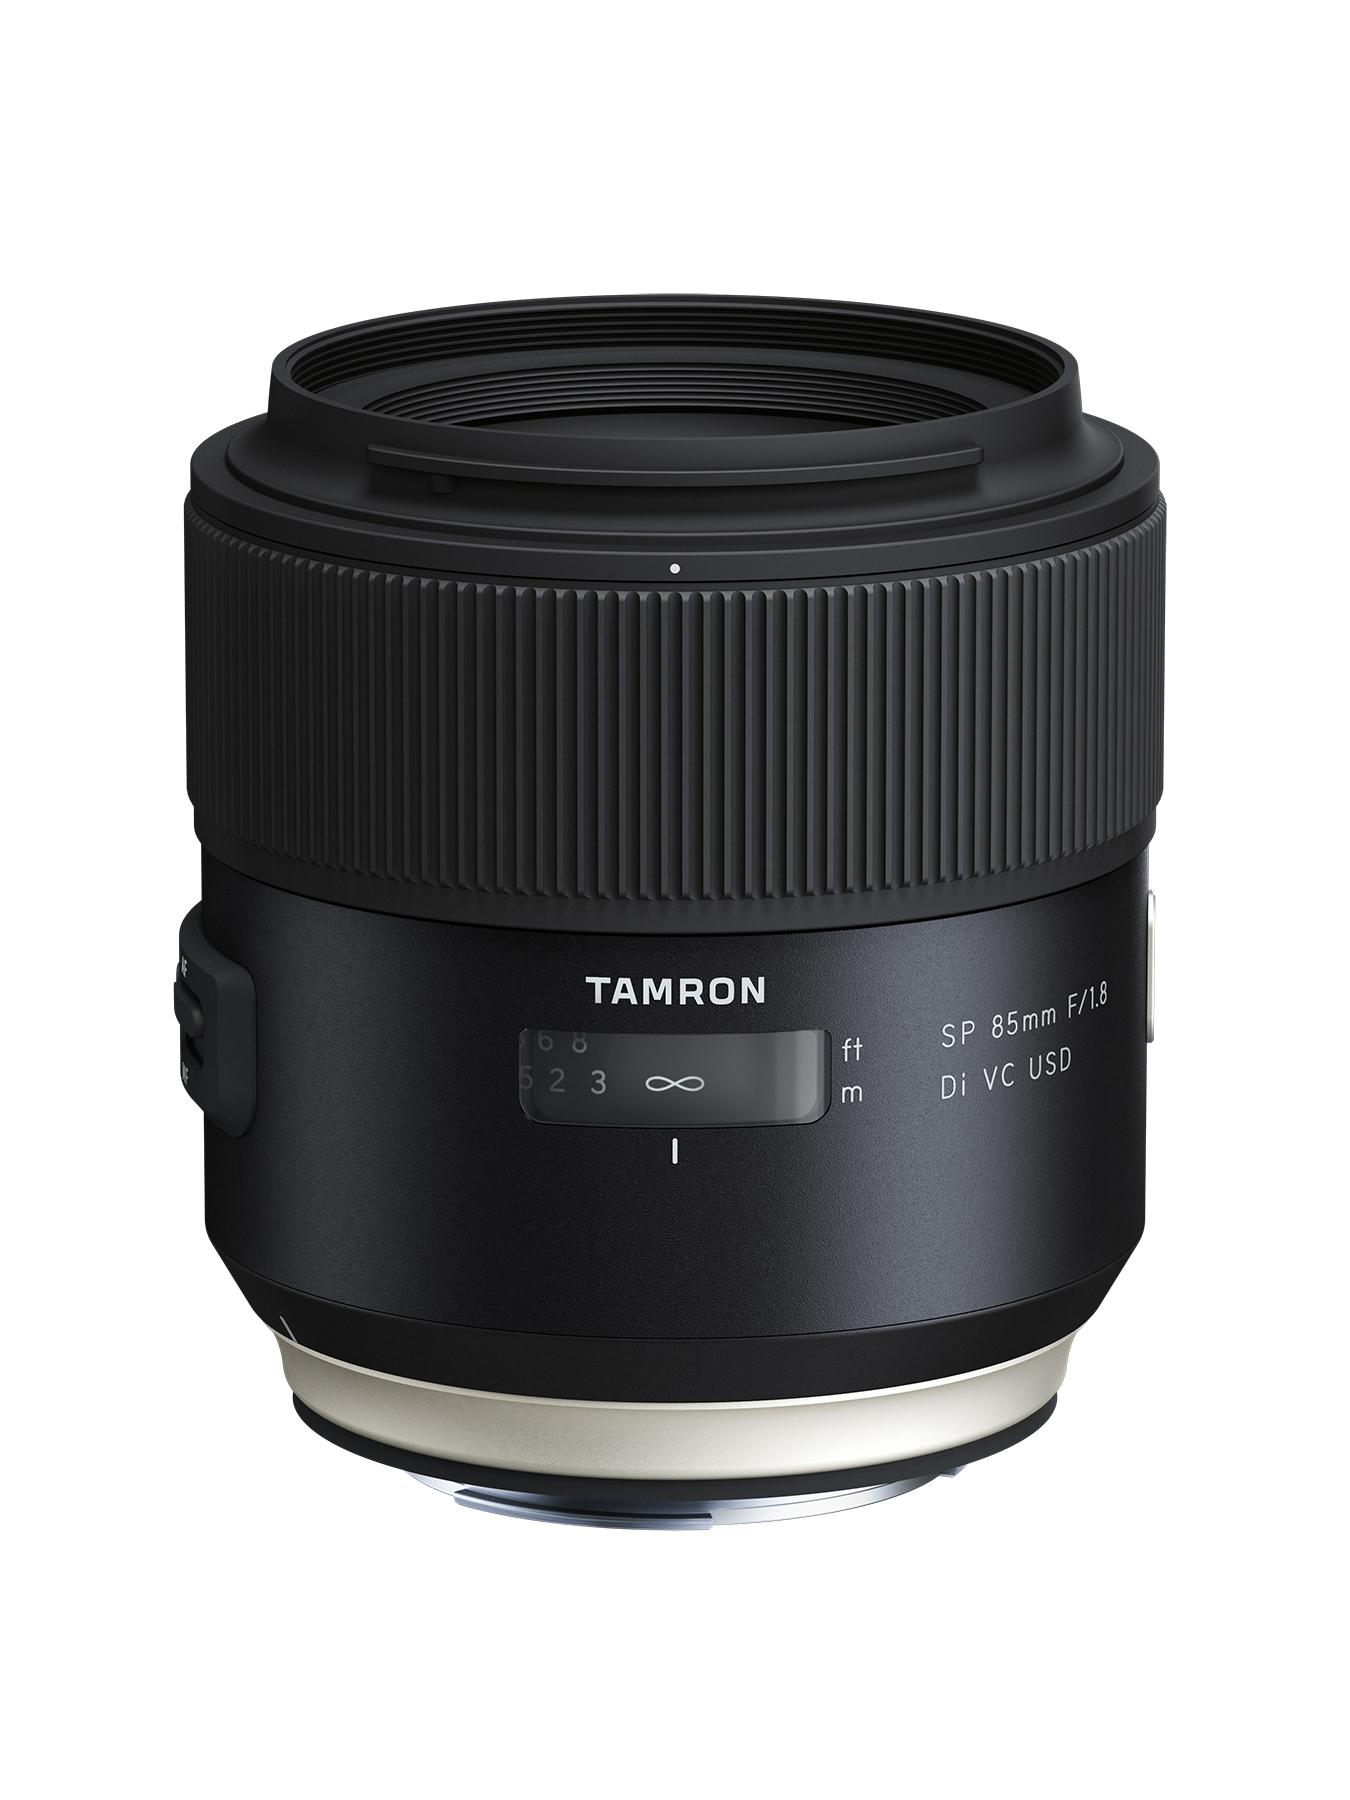 Black Tamron Tap-in Console for Sony Lenses